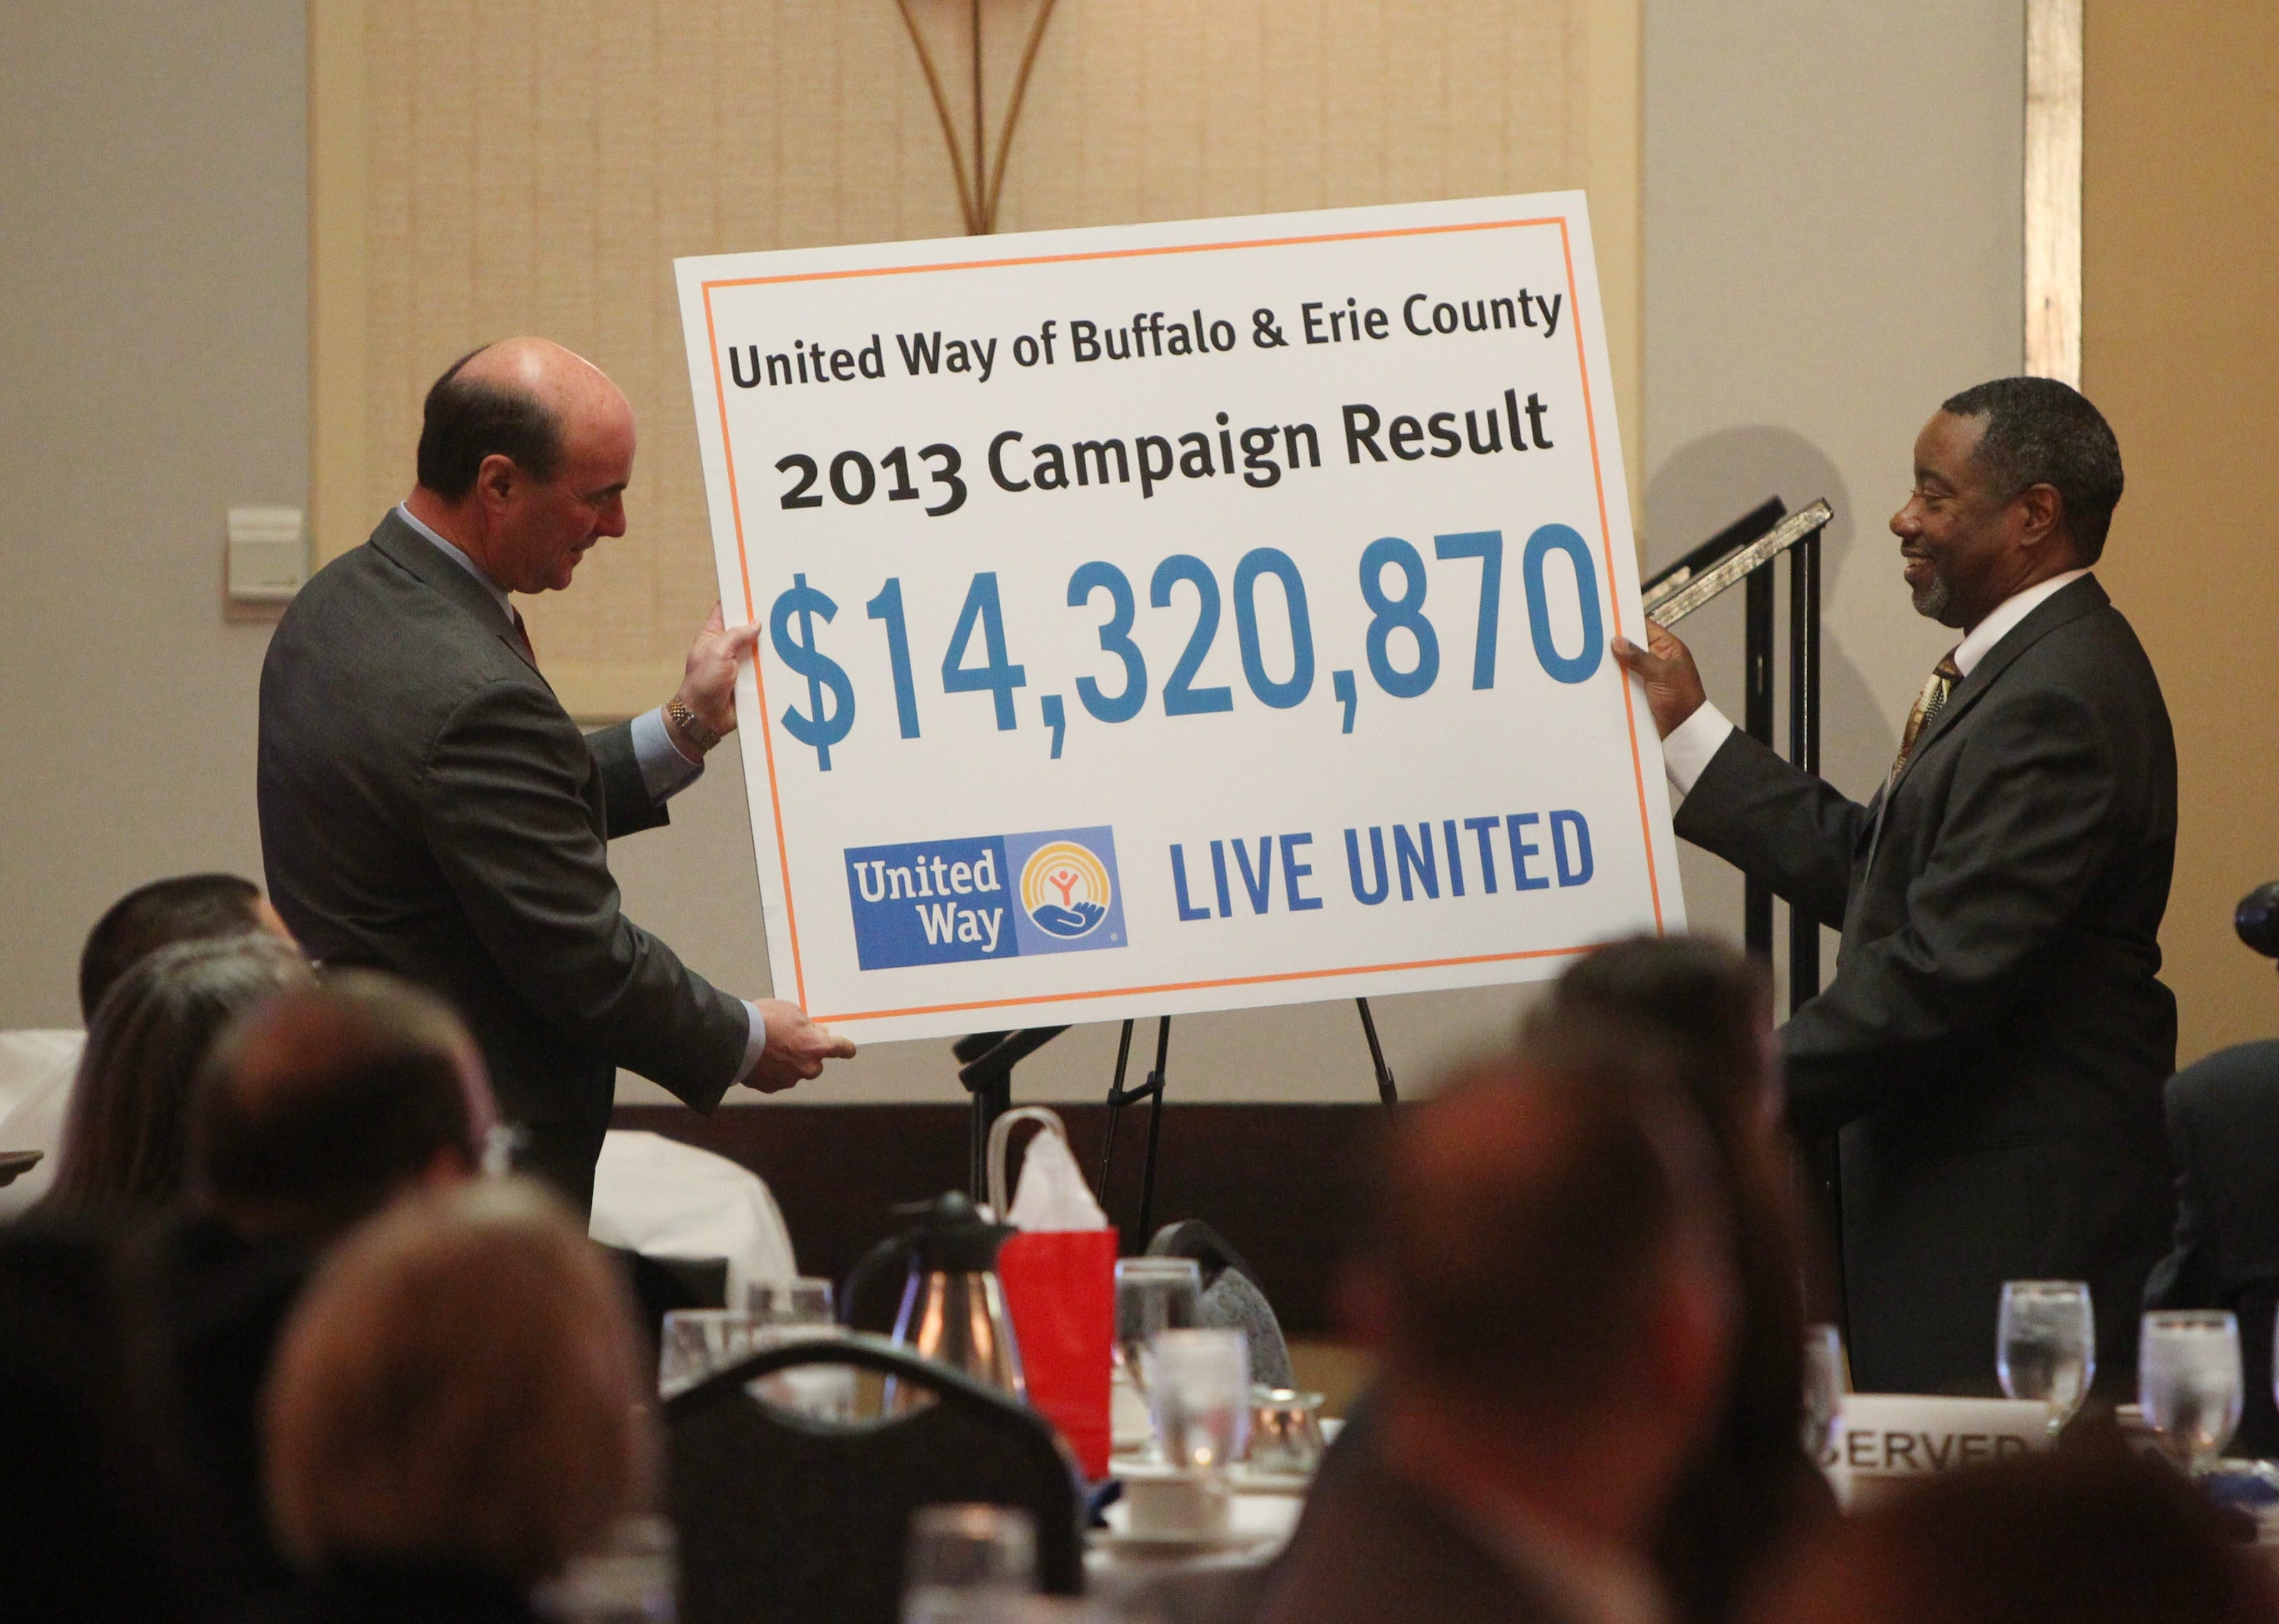 United Way of Buffalo and Erie Co. CEO Michael Weiner, left, and Steve Finch, chairman of the United Way of Buffalo and Erie County board, right, at the Hyatt in Buffalo on April 11.